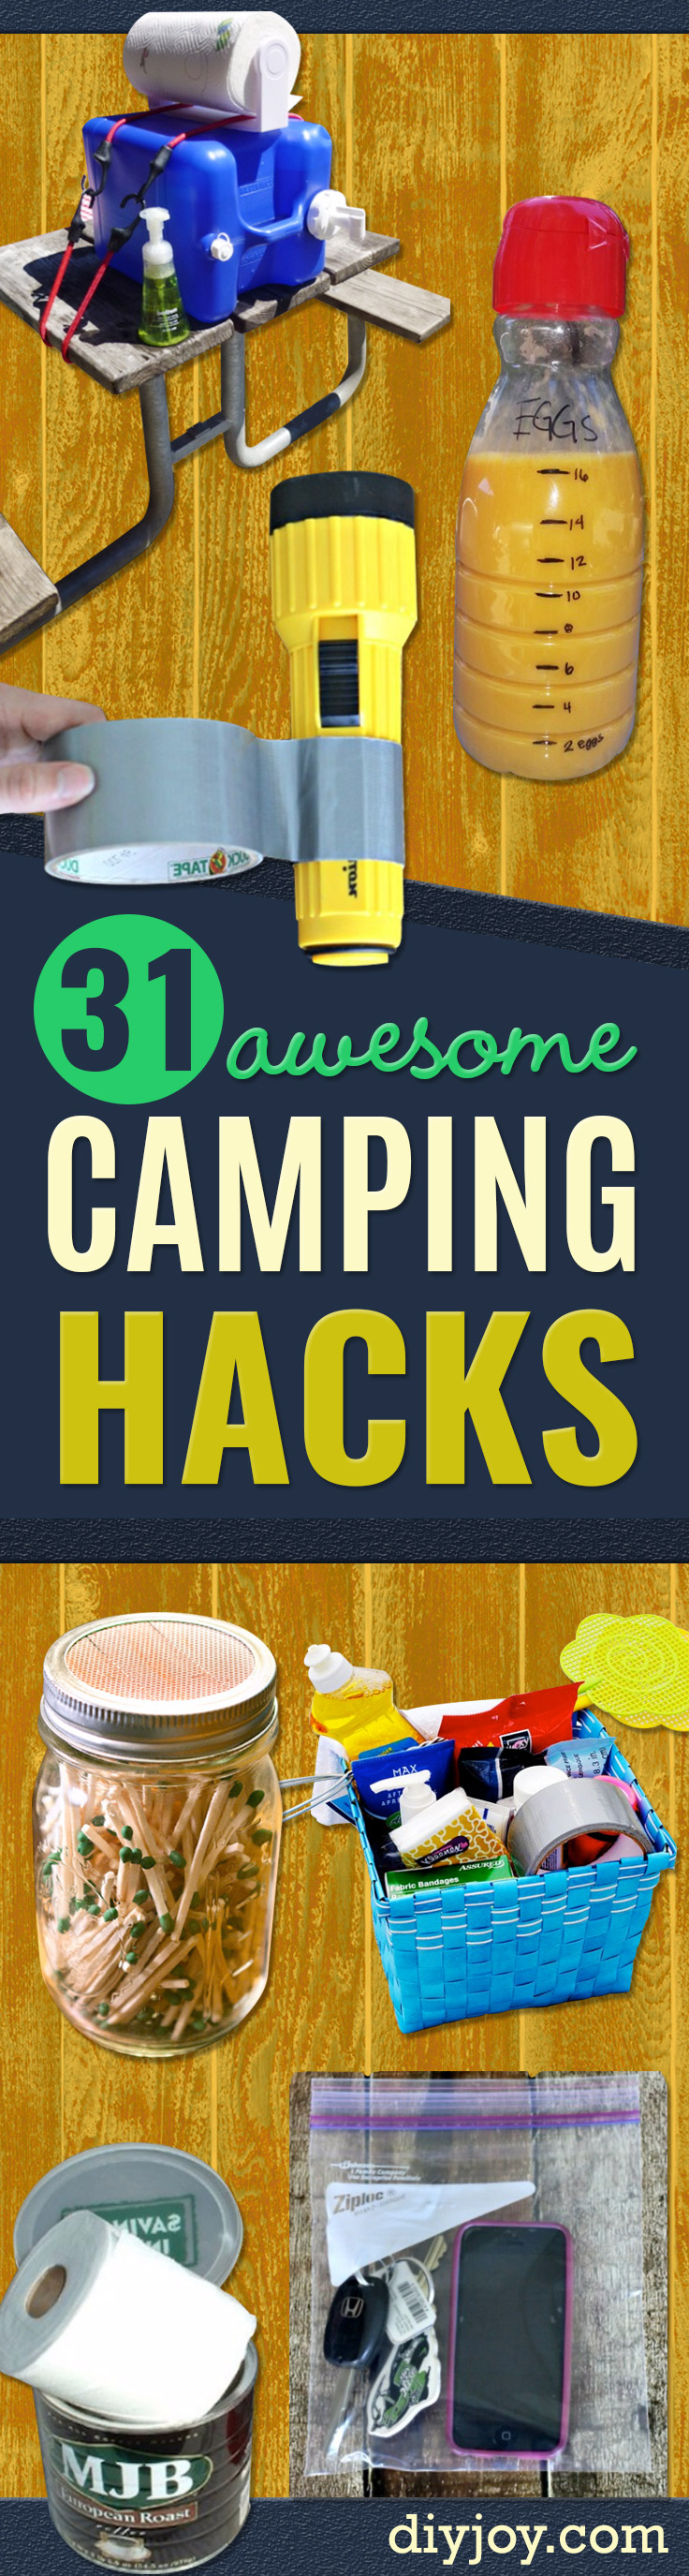 diy camping hacks- Easy DIY Camp Tips and Tricks, Recipes for Camping - Gear Ideas, Cheap Camping Supplies, Tutorials for Making Quick Camping Food, Fire Starters, Gear Holders